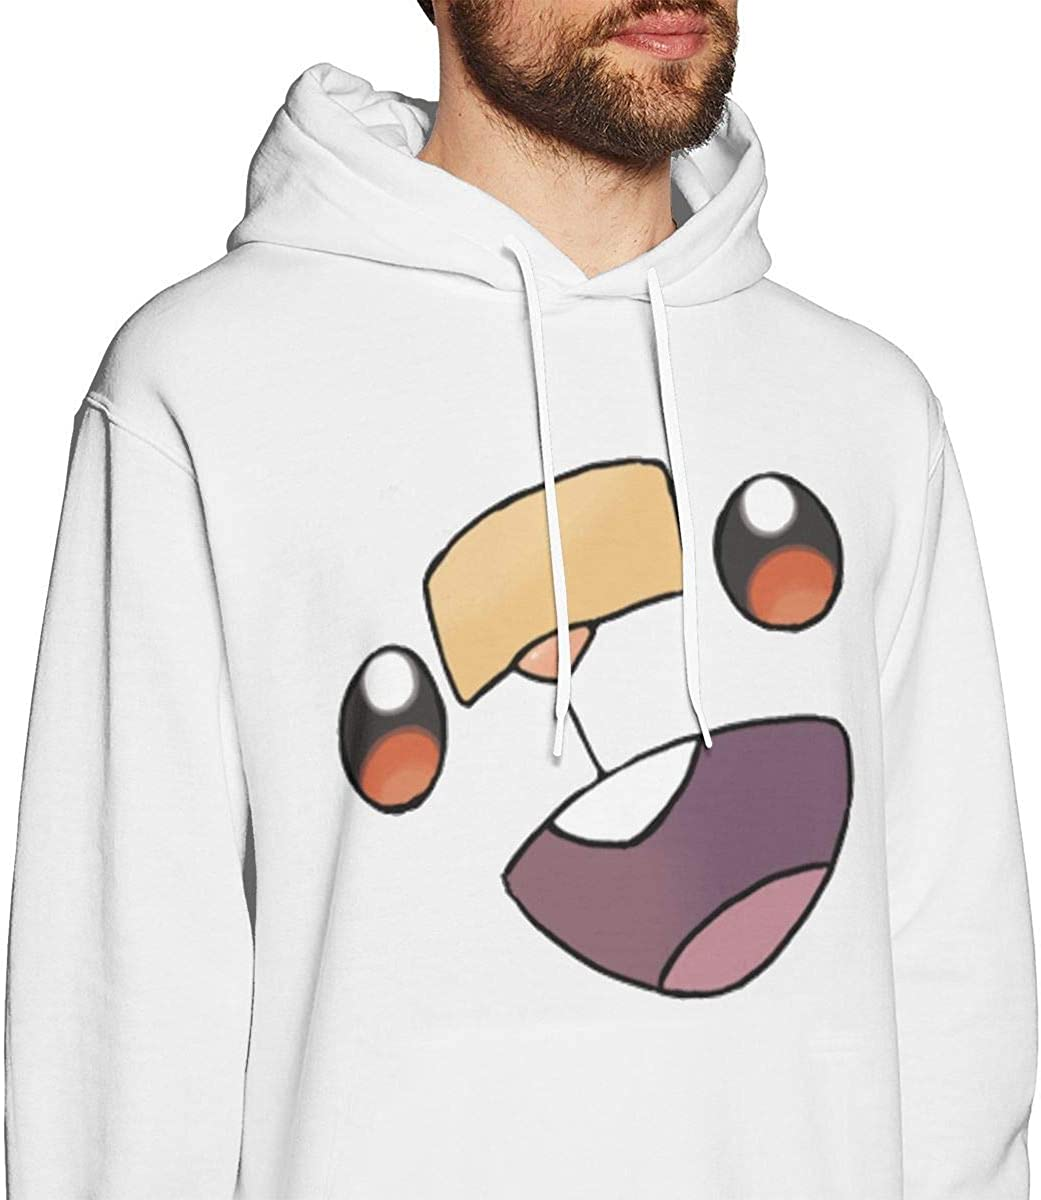 NZ Sword and Sobble Face Herren Pullover Hoodies Rundhals-Langarm-Sweatshirt Weiß Medium|style2